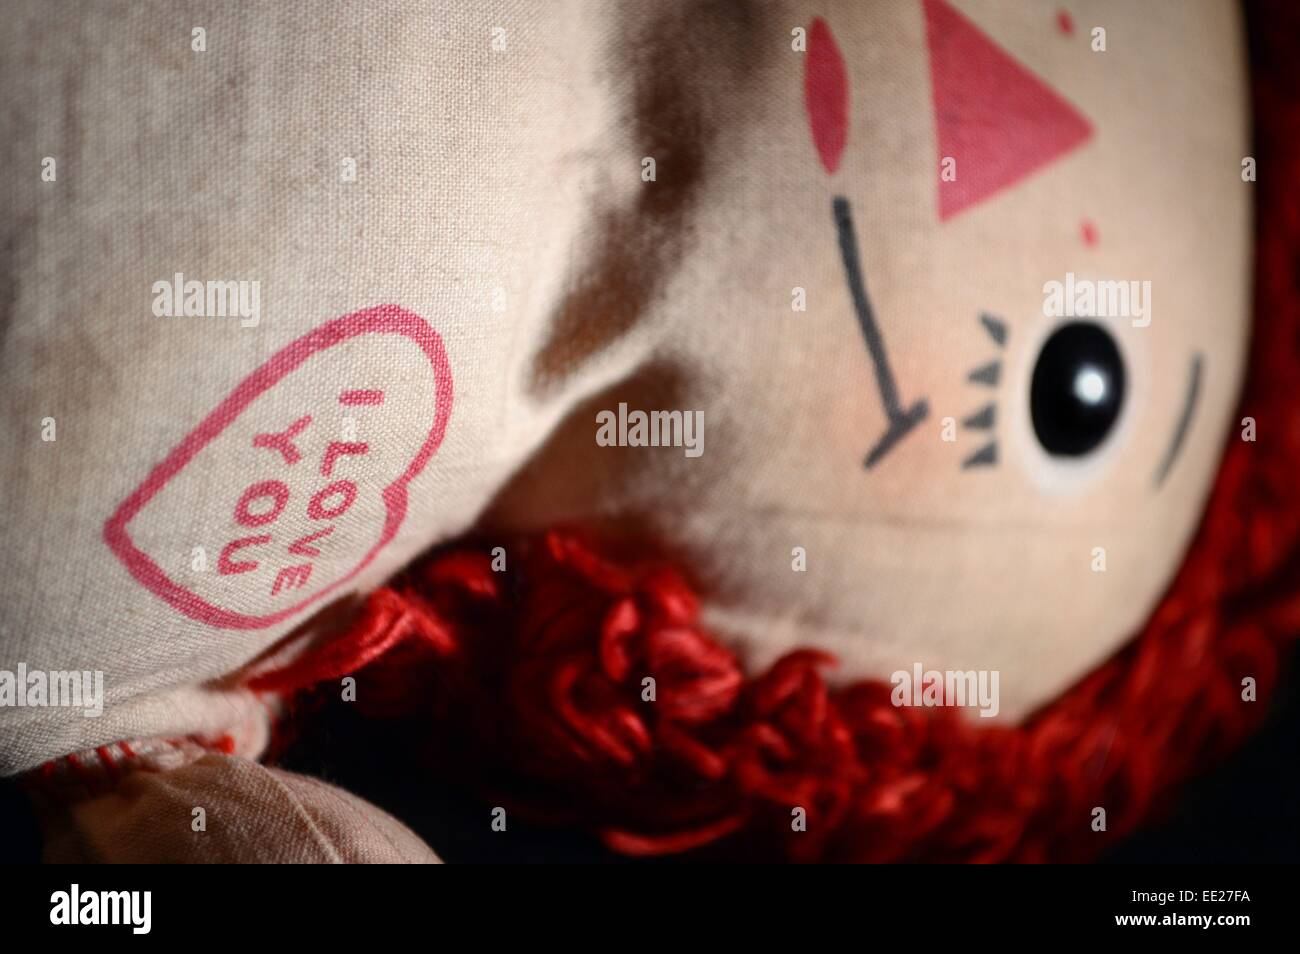 I Love You, close up focus on heart with the words saying I love you on a raggedy ann doll,doll face is out of focus - Stock Image